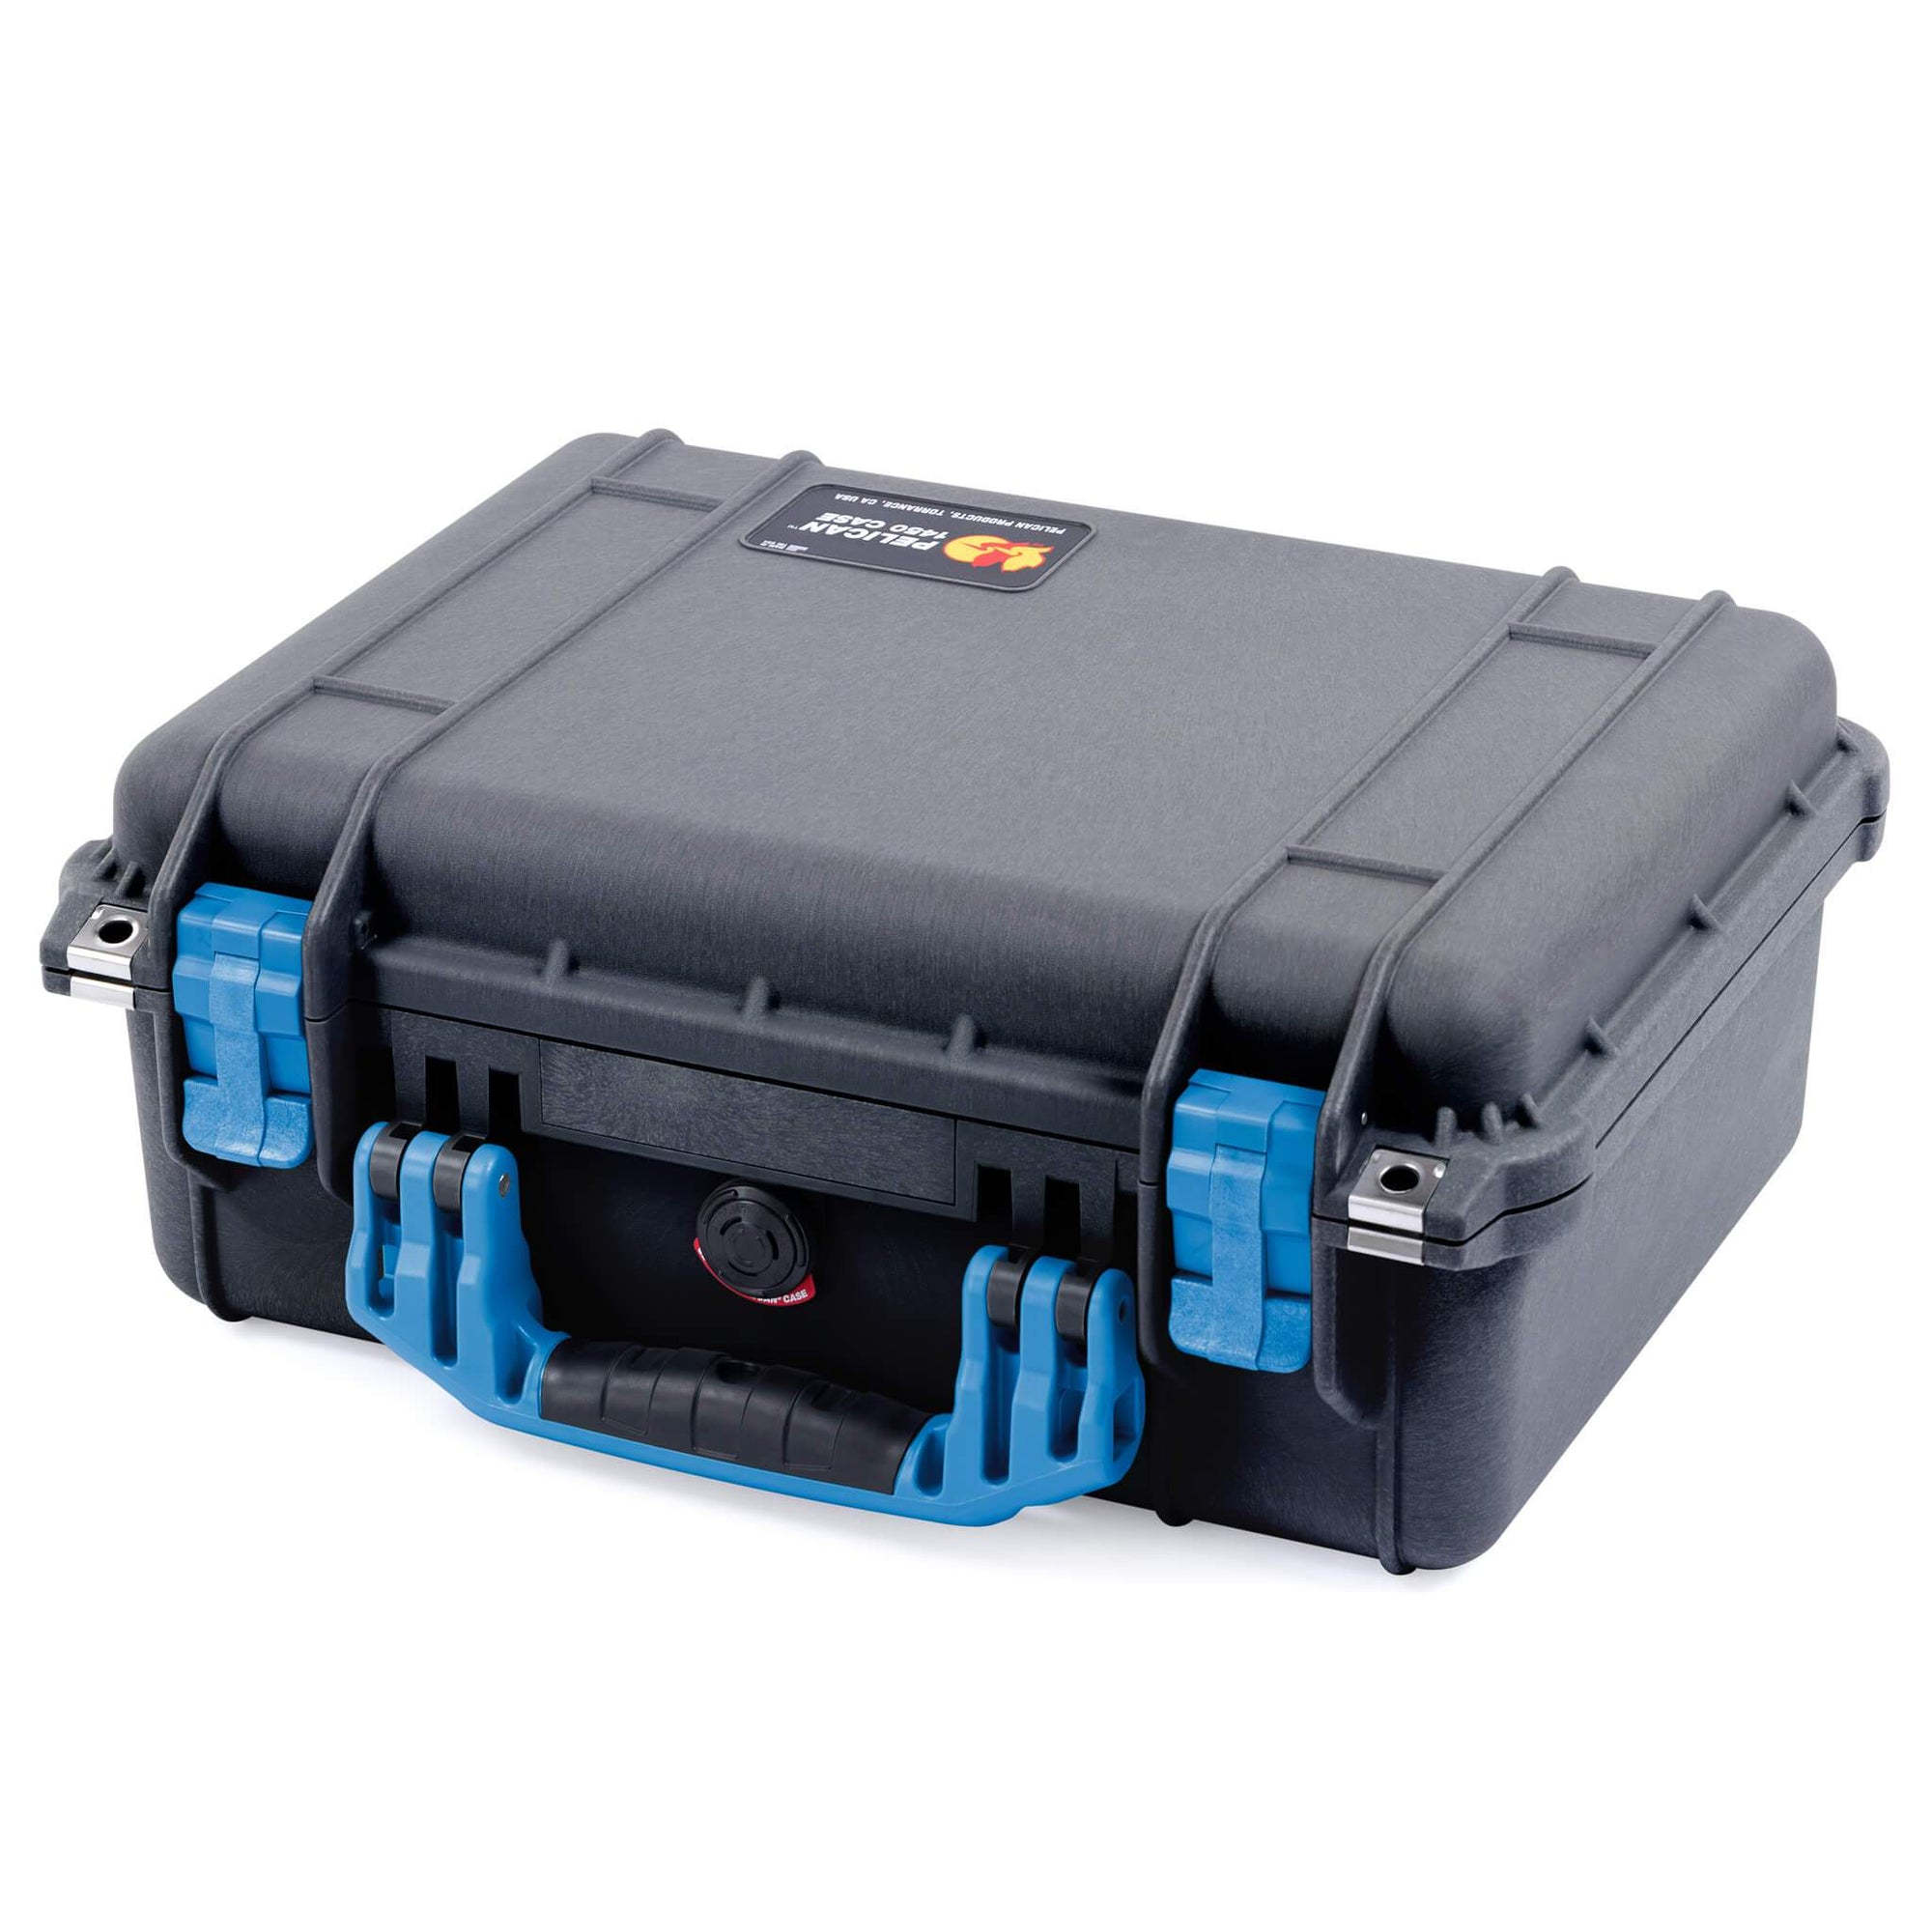 Pelican 1450 Case, Black with Blue Handle & Latches - Pelican Color Case